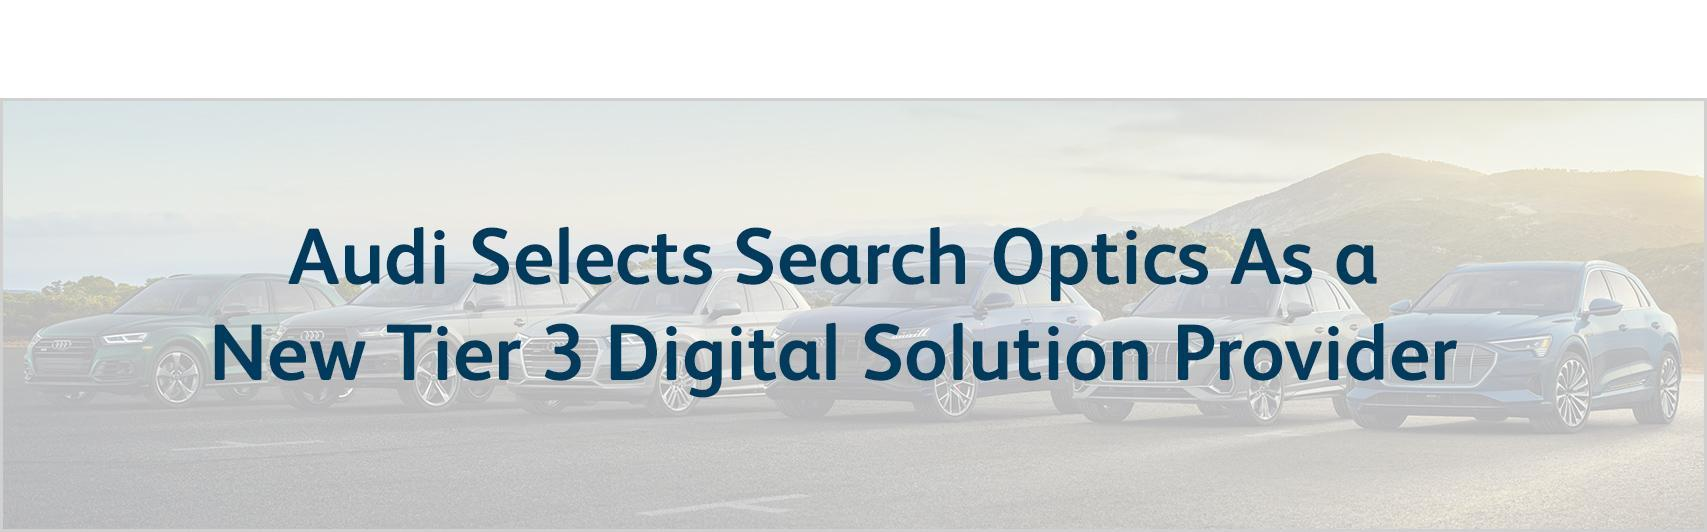 Search Optics Selected by Audi as a New Tier 3 Digital Solutions Provider